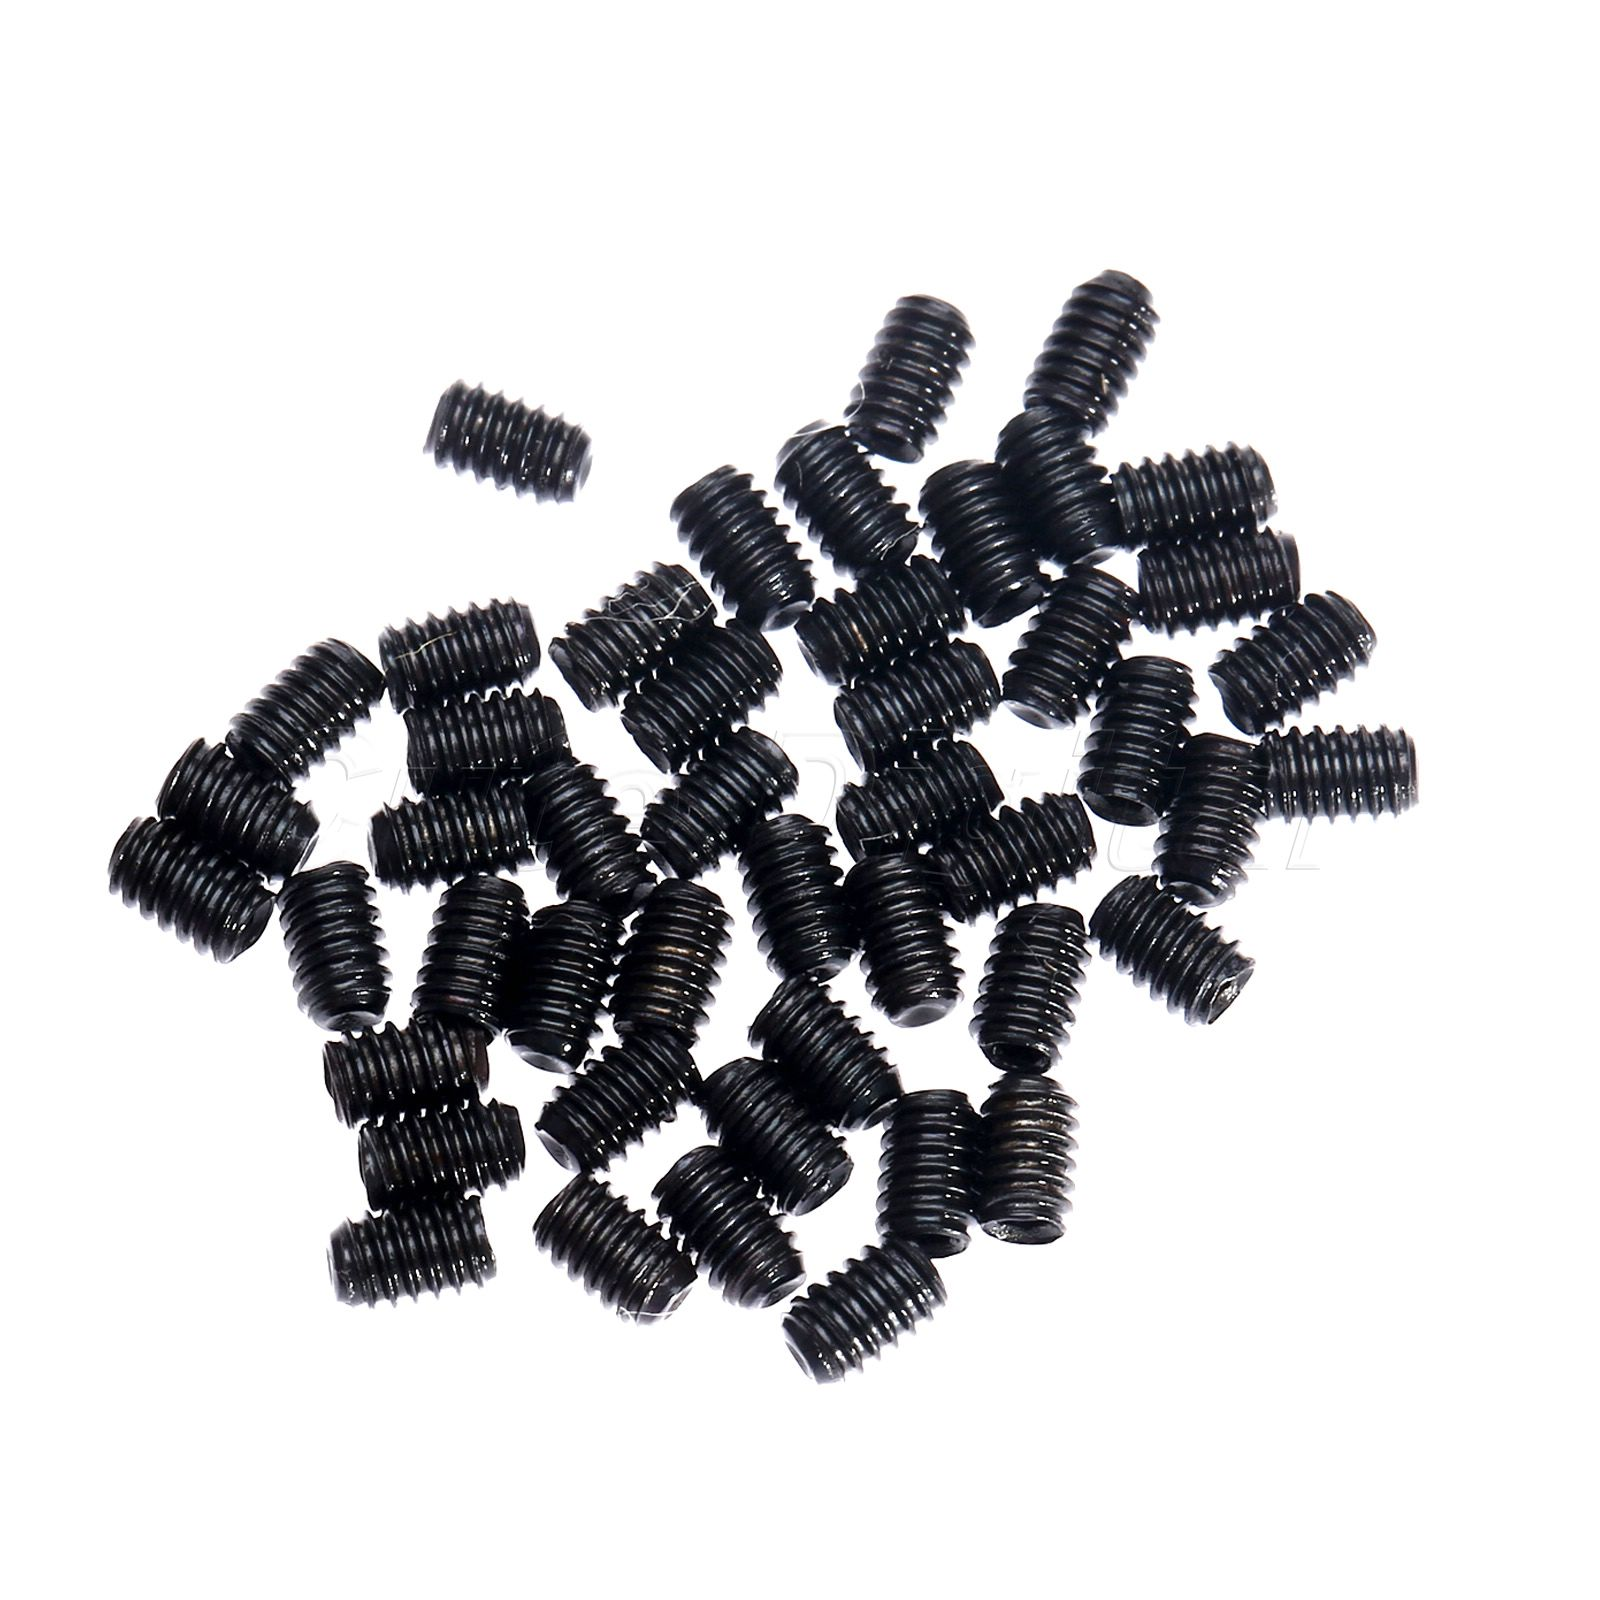 50PC/<font><b>set</b></font> M2x 3mm Metric Thread Carbon Steel Allen Head Hex <font><b>Socket</b></font> Grub <font><b>Screws</b></font> Bolts Fasteners Self-tapping <font><b>Screw</b></font> <font><b>Socket</b></font> Head <font><b>set</b></font>